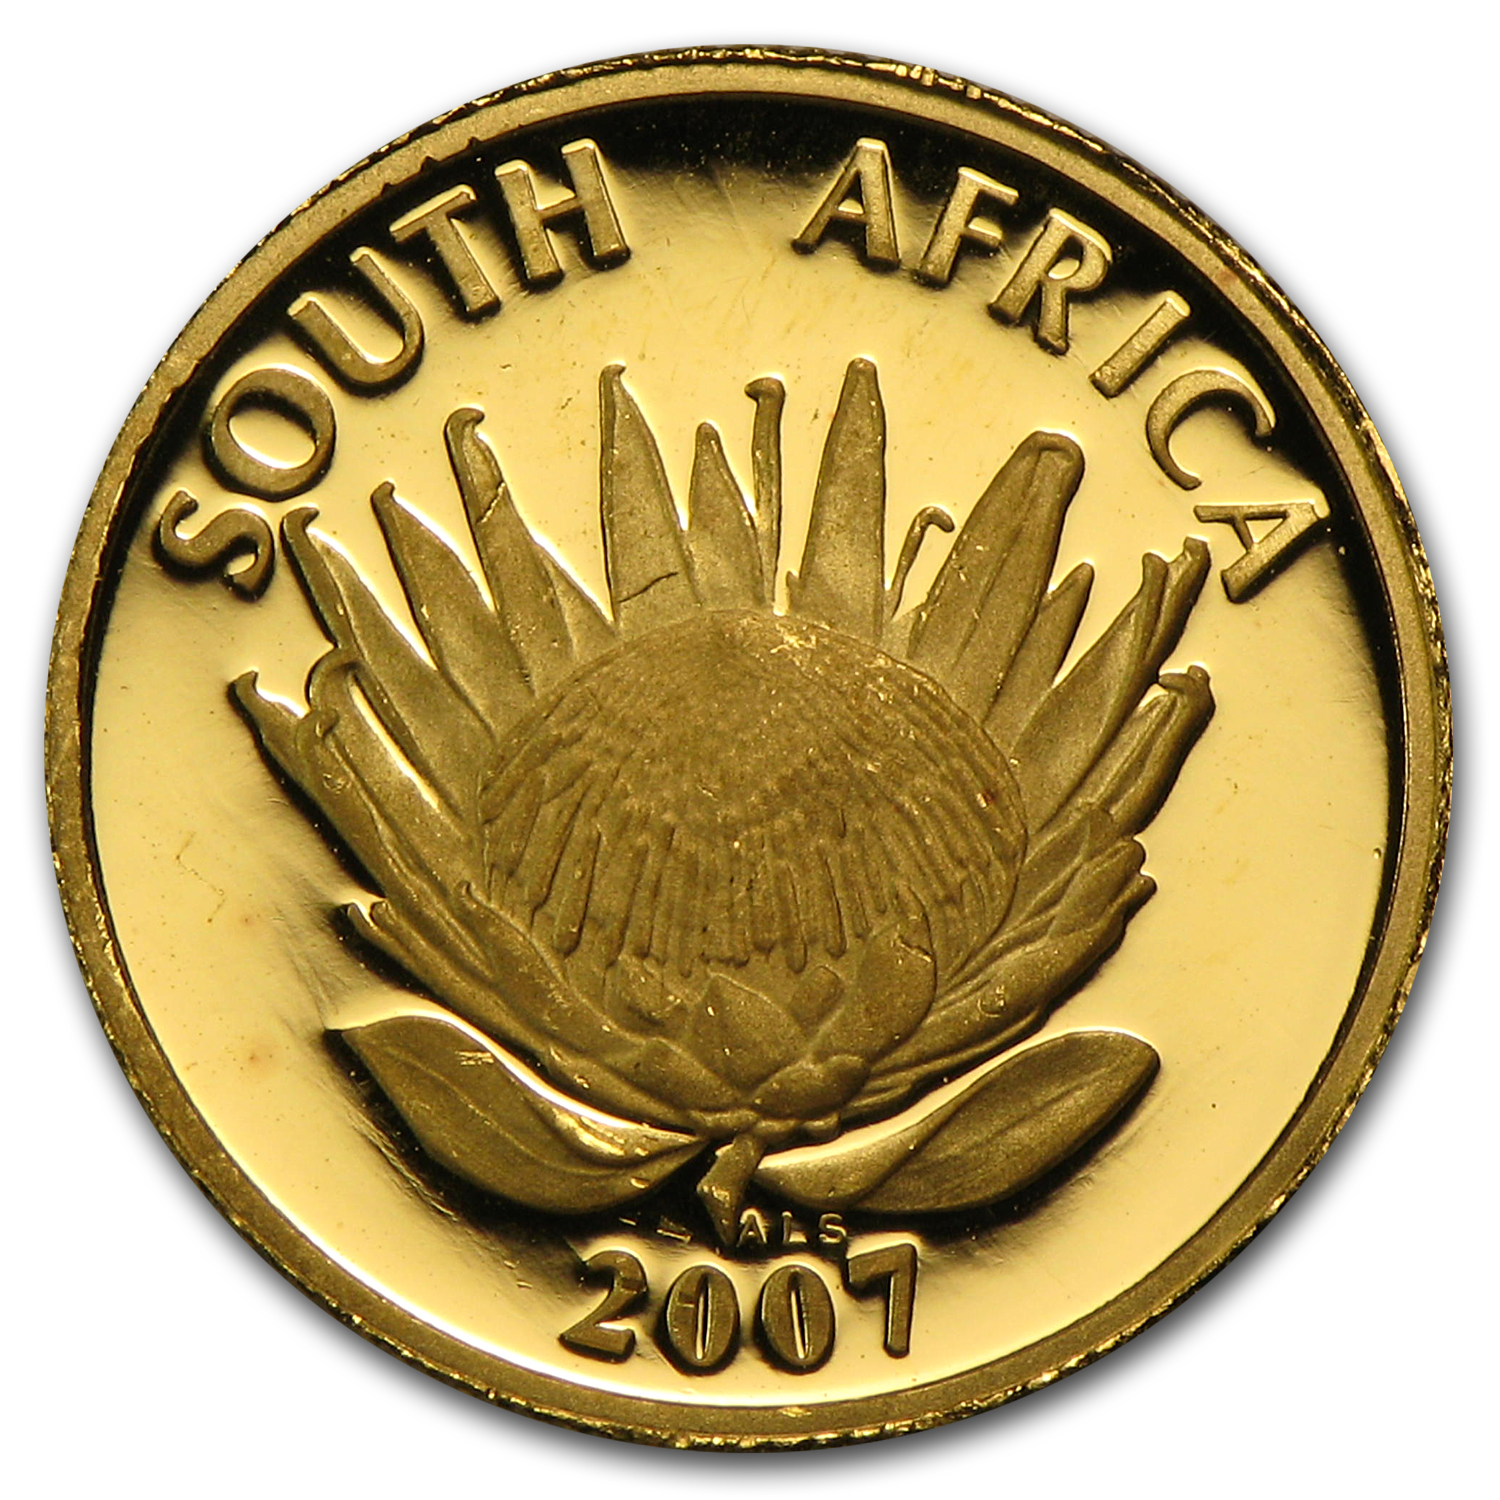 2007 South African Gold 1/10 oz Protea Nobel Prize (Proof)